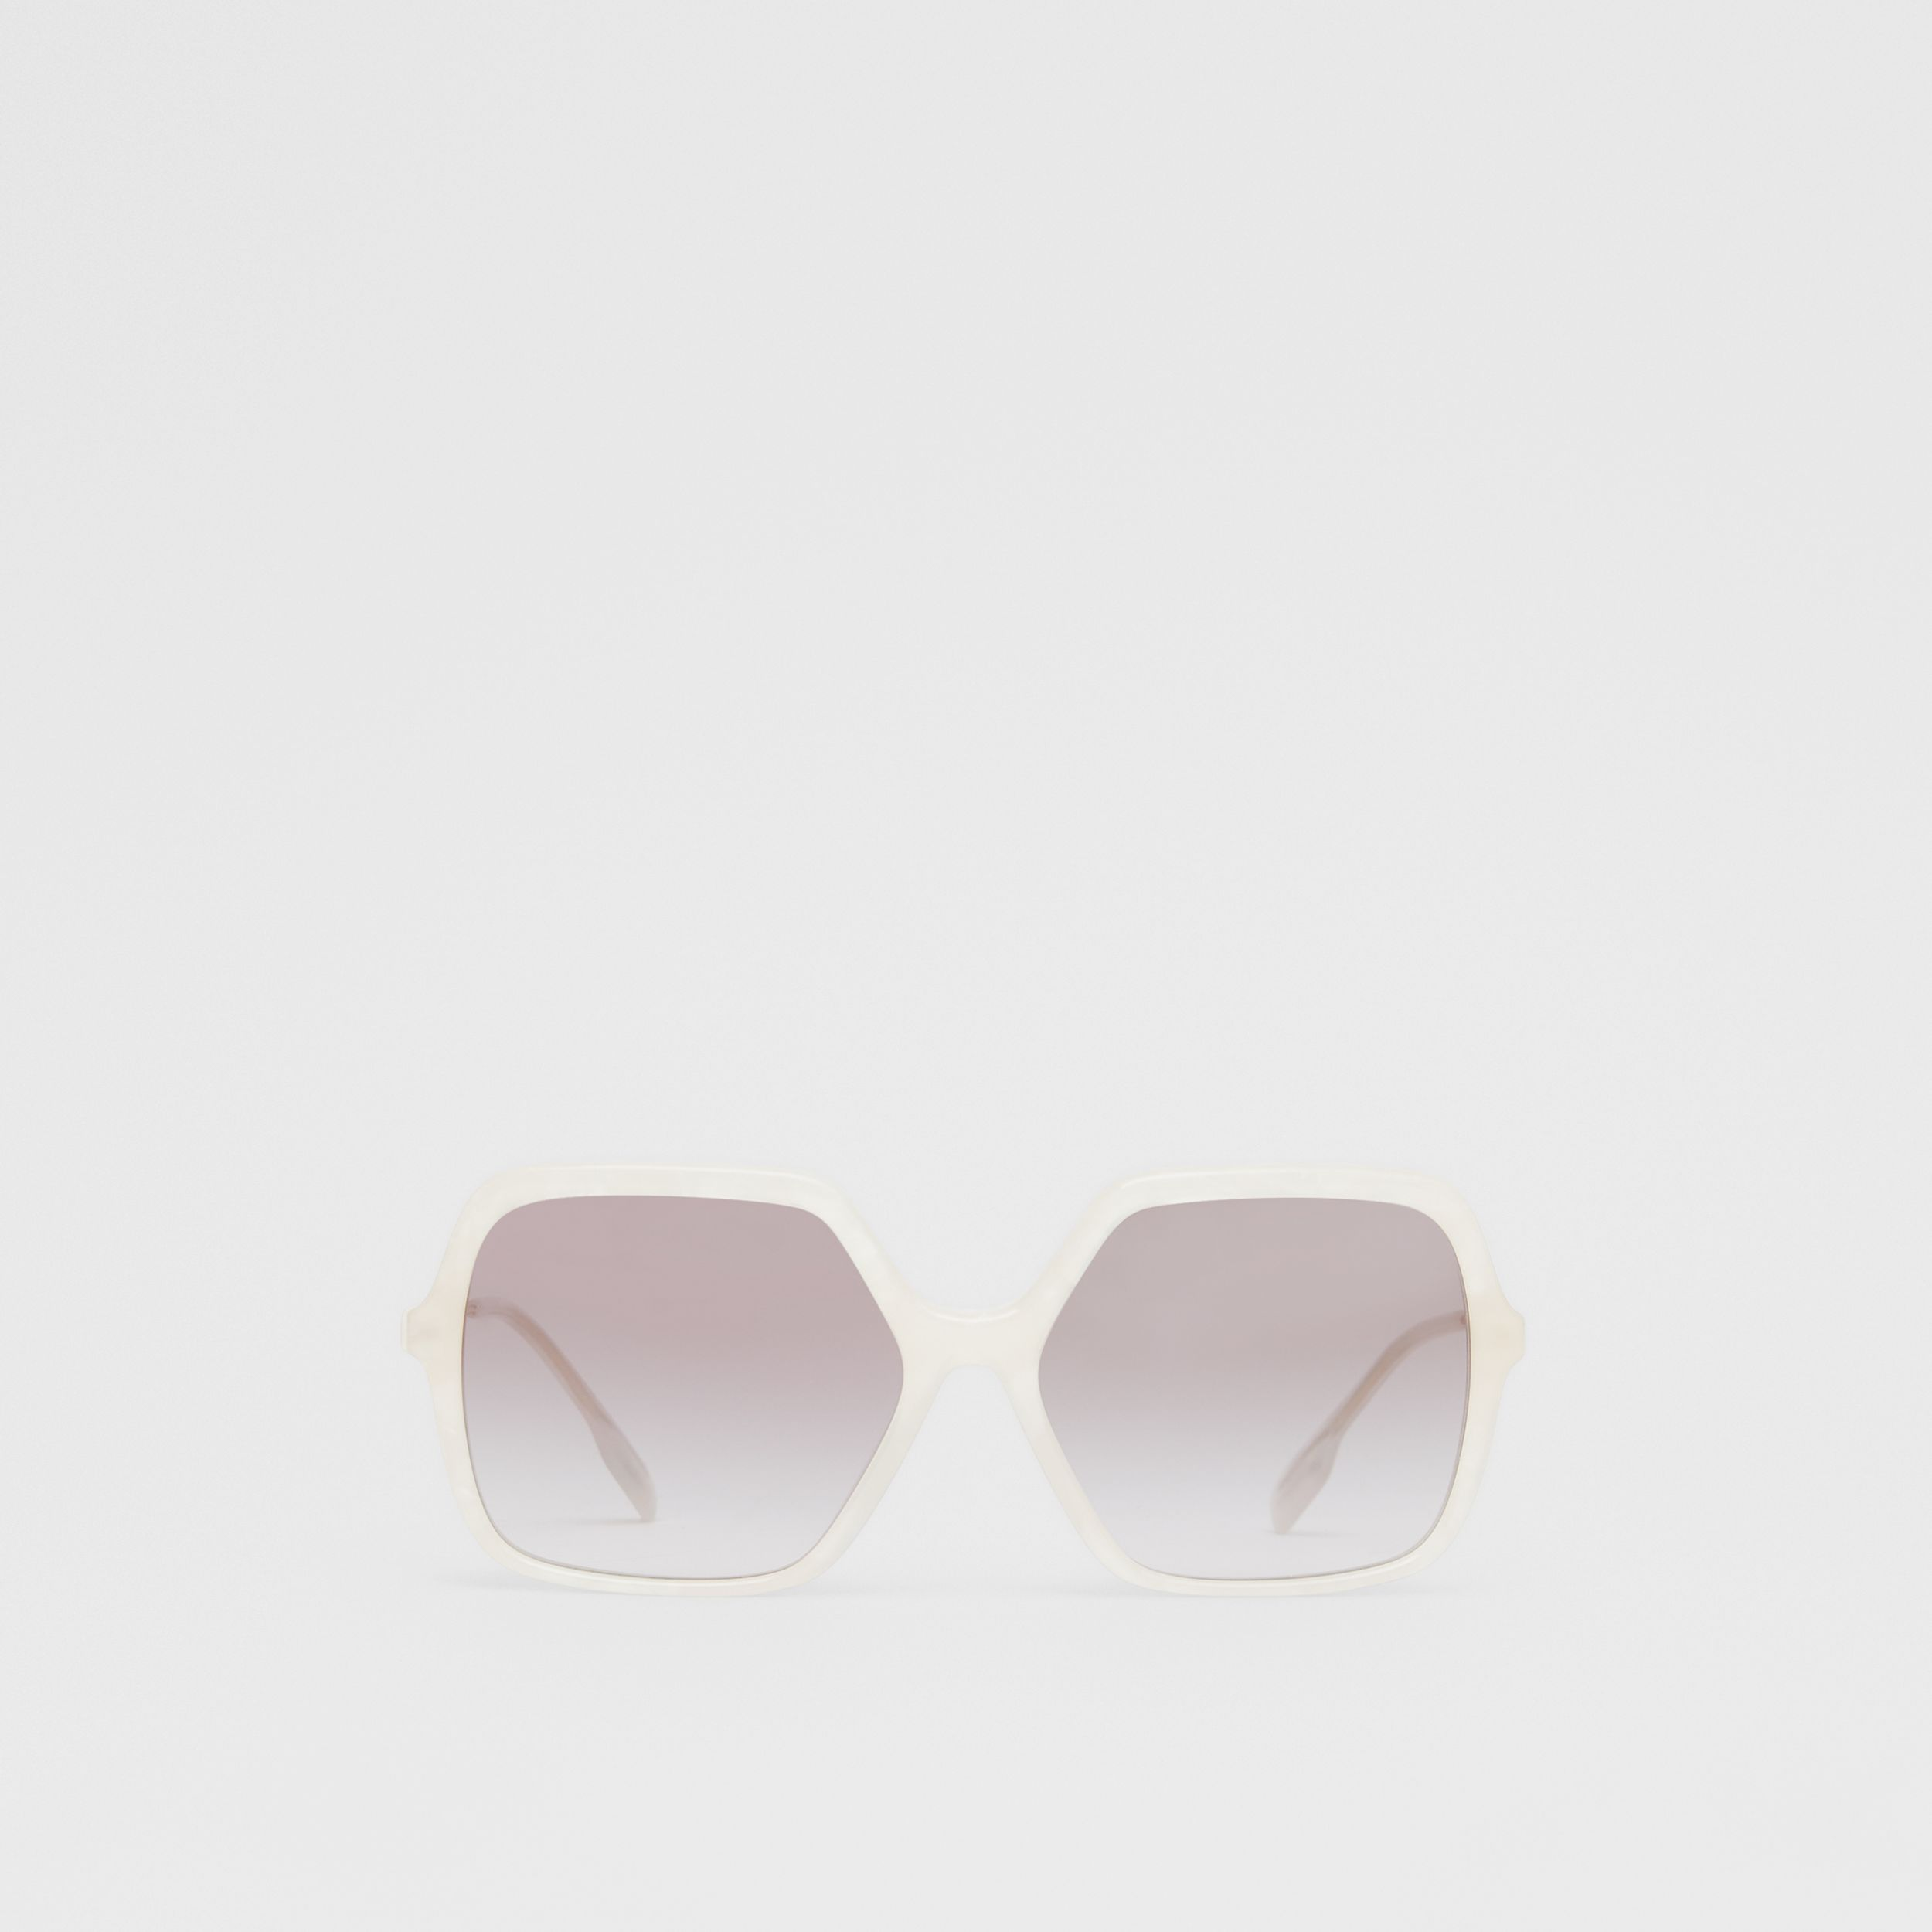 Oversized Square Frame Sunglasses in Pearl - Women | Burberry - 1